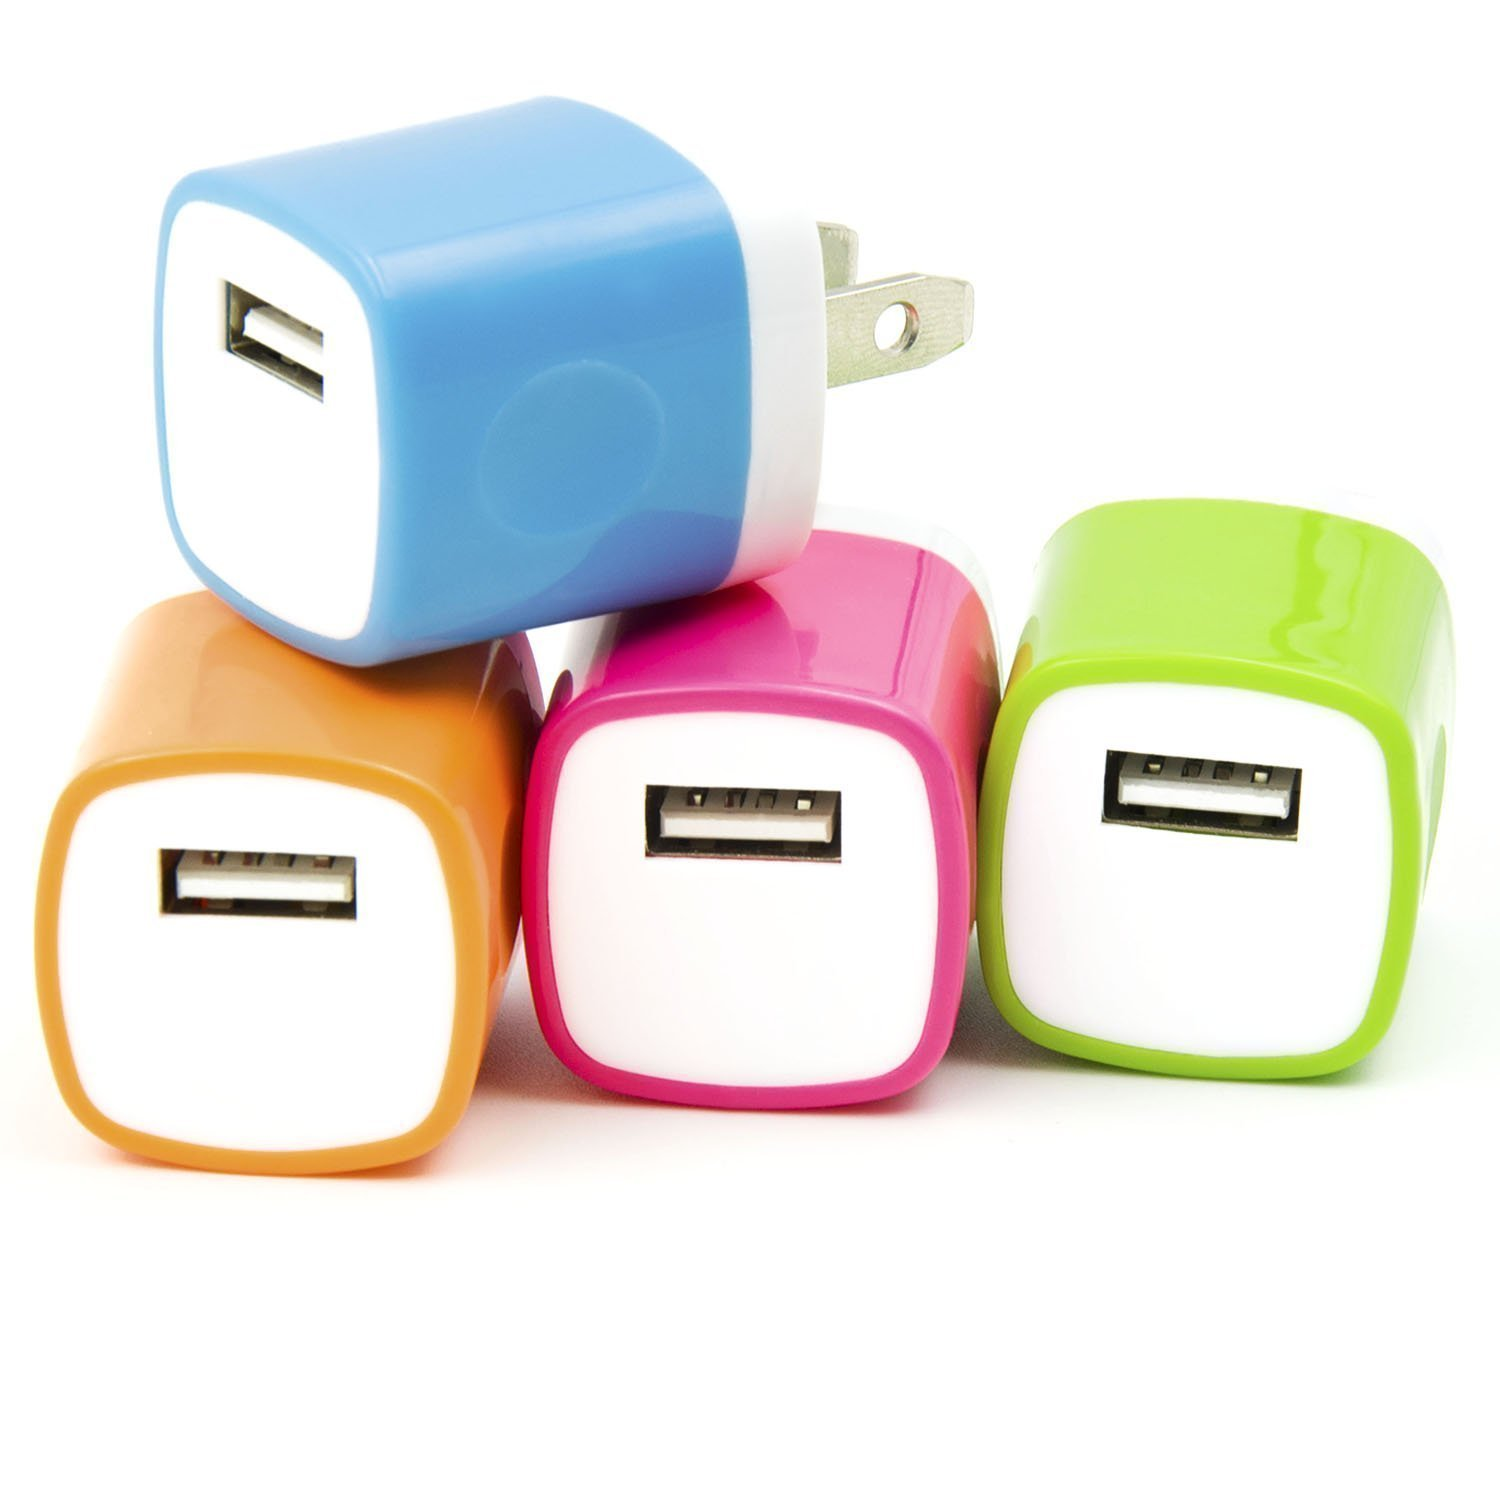 CHARGE FASTER for iPhone 6 5S 5C 5 4S 4 USB AC Wall Charger PLUG Adapter New~